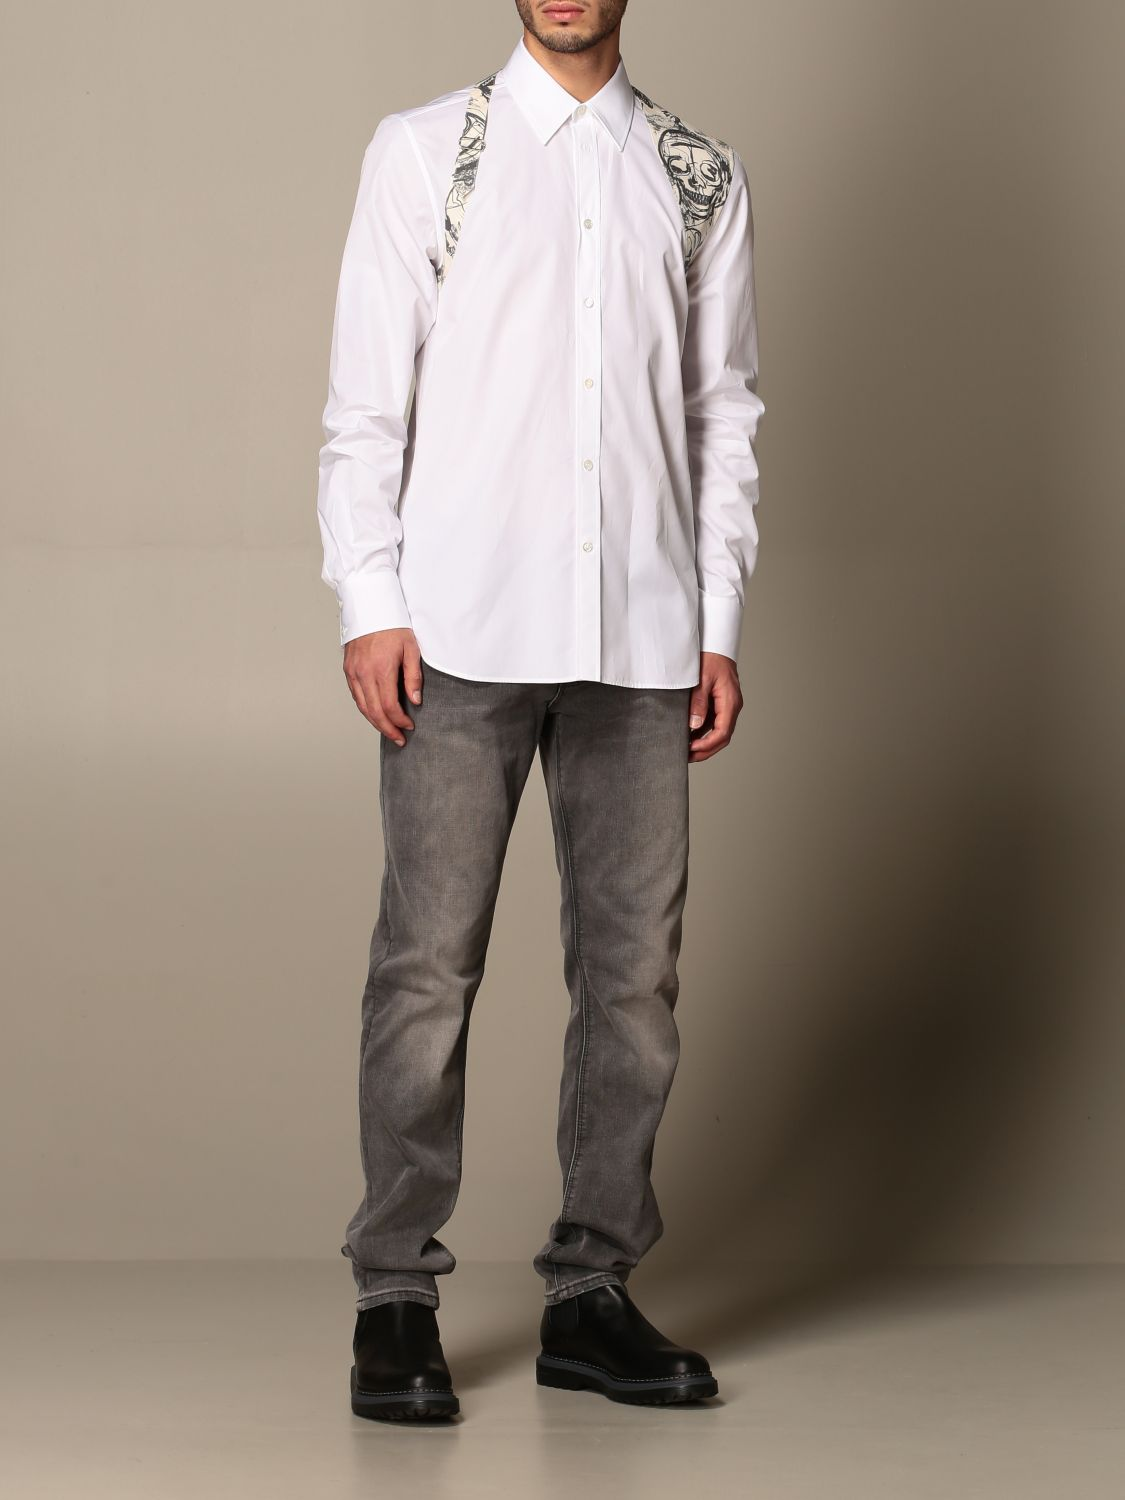 Shirt Alexander Mcqueen: Alexander McQueen shirt with skull print buckle white 2